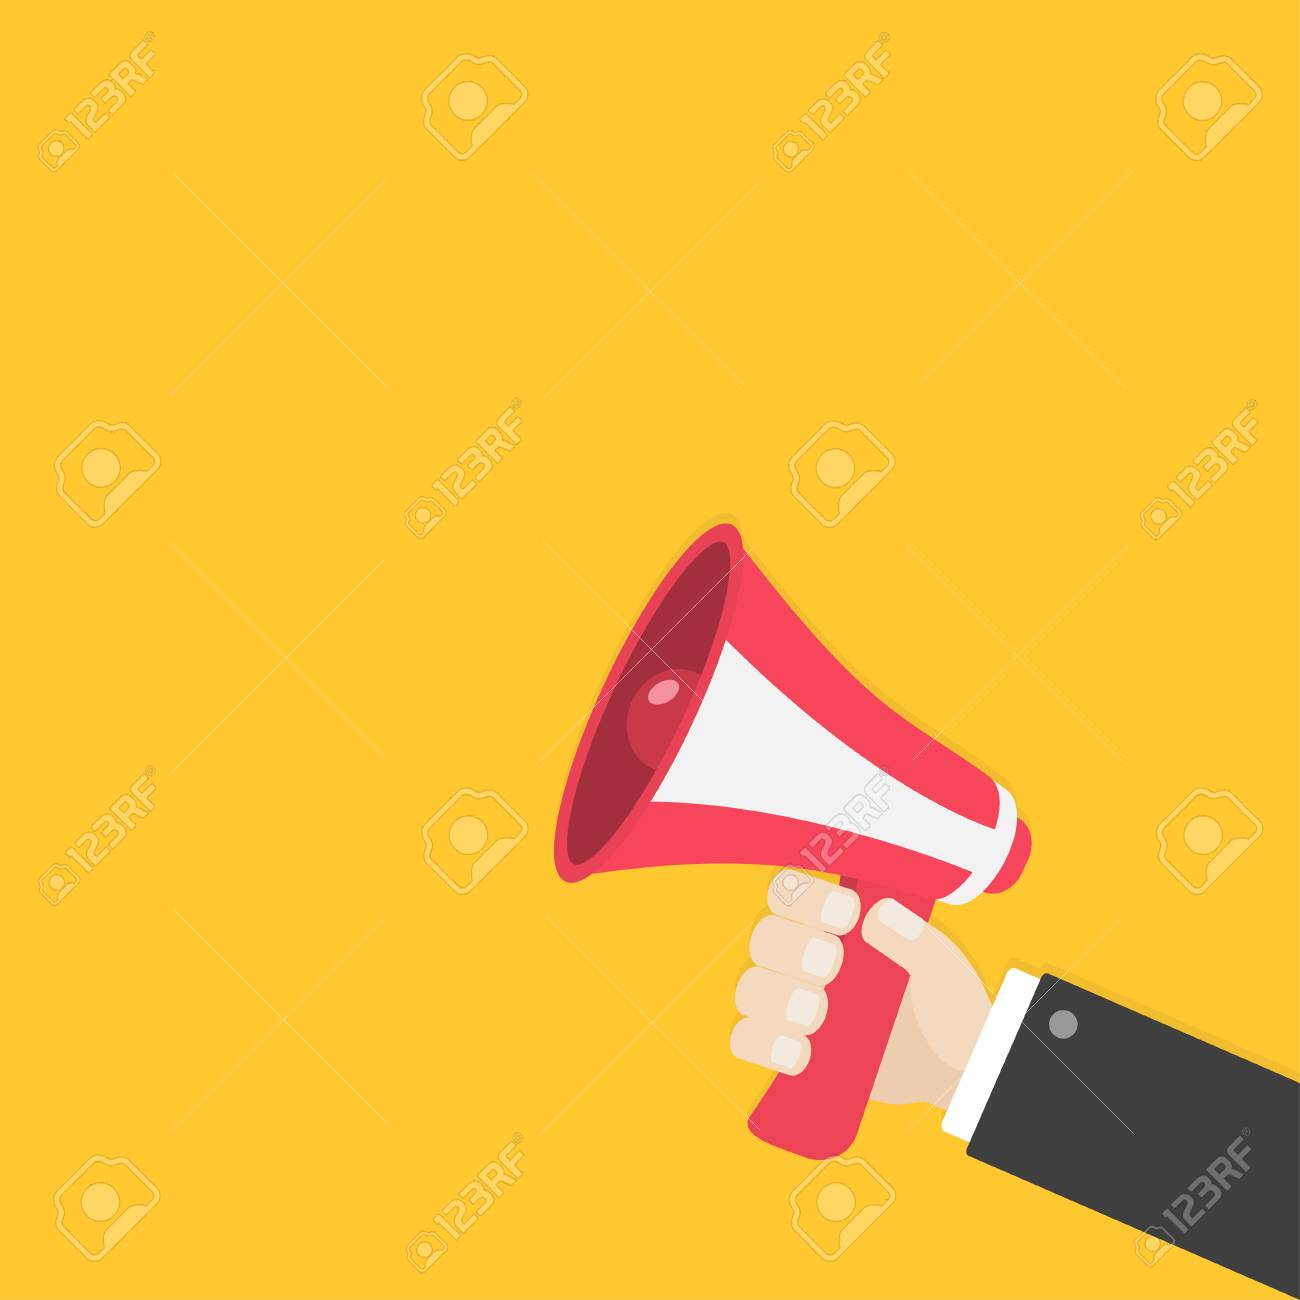 businessman hand holding megaphone speaker loudspeaker icon royalty free cliparts vectors and stock illustration image 81041422 businessman hand holding megaphone speaker loudspeaker icon